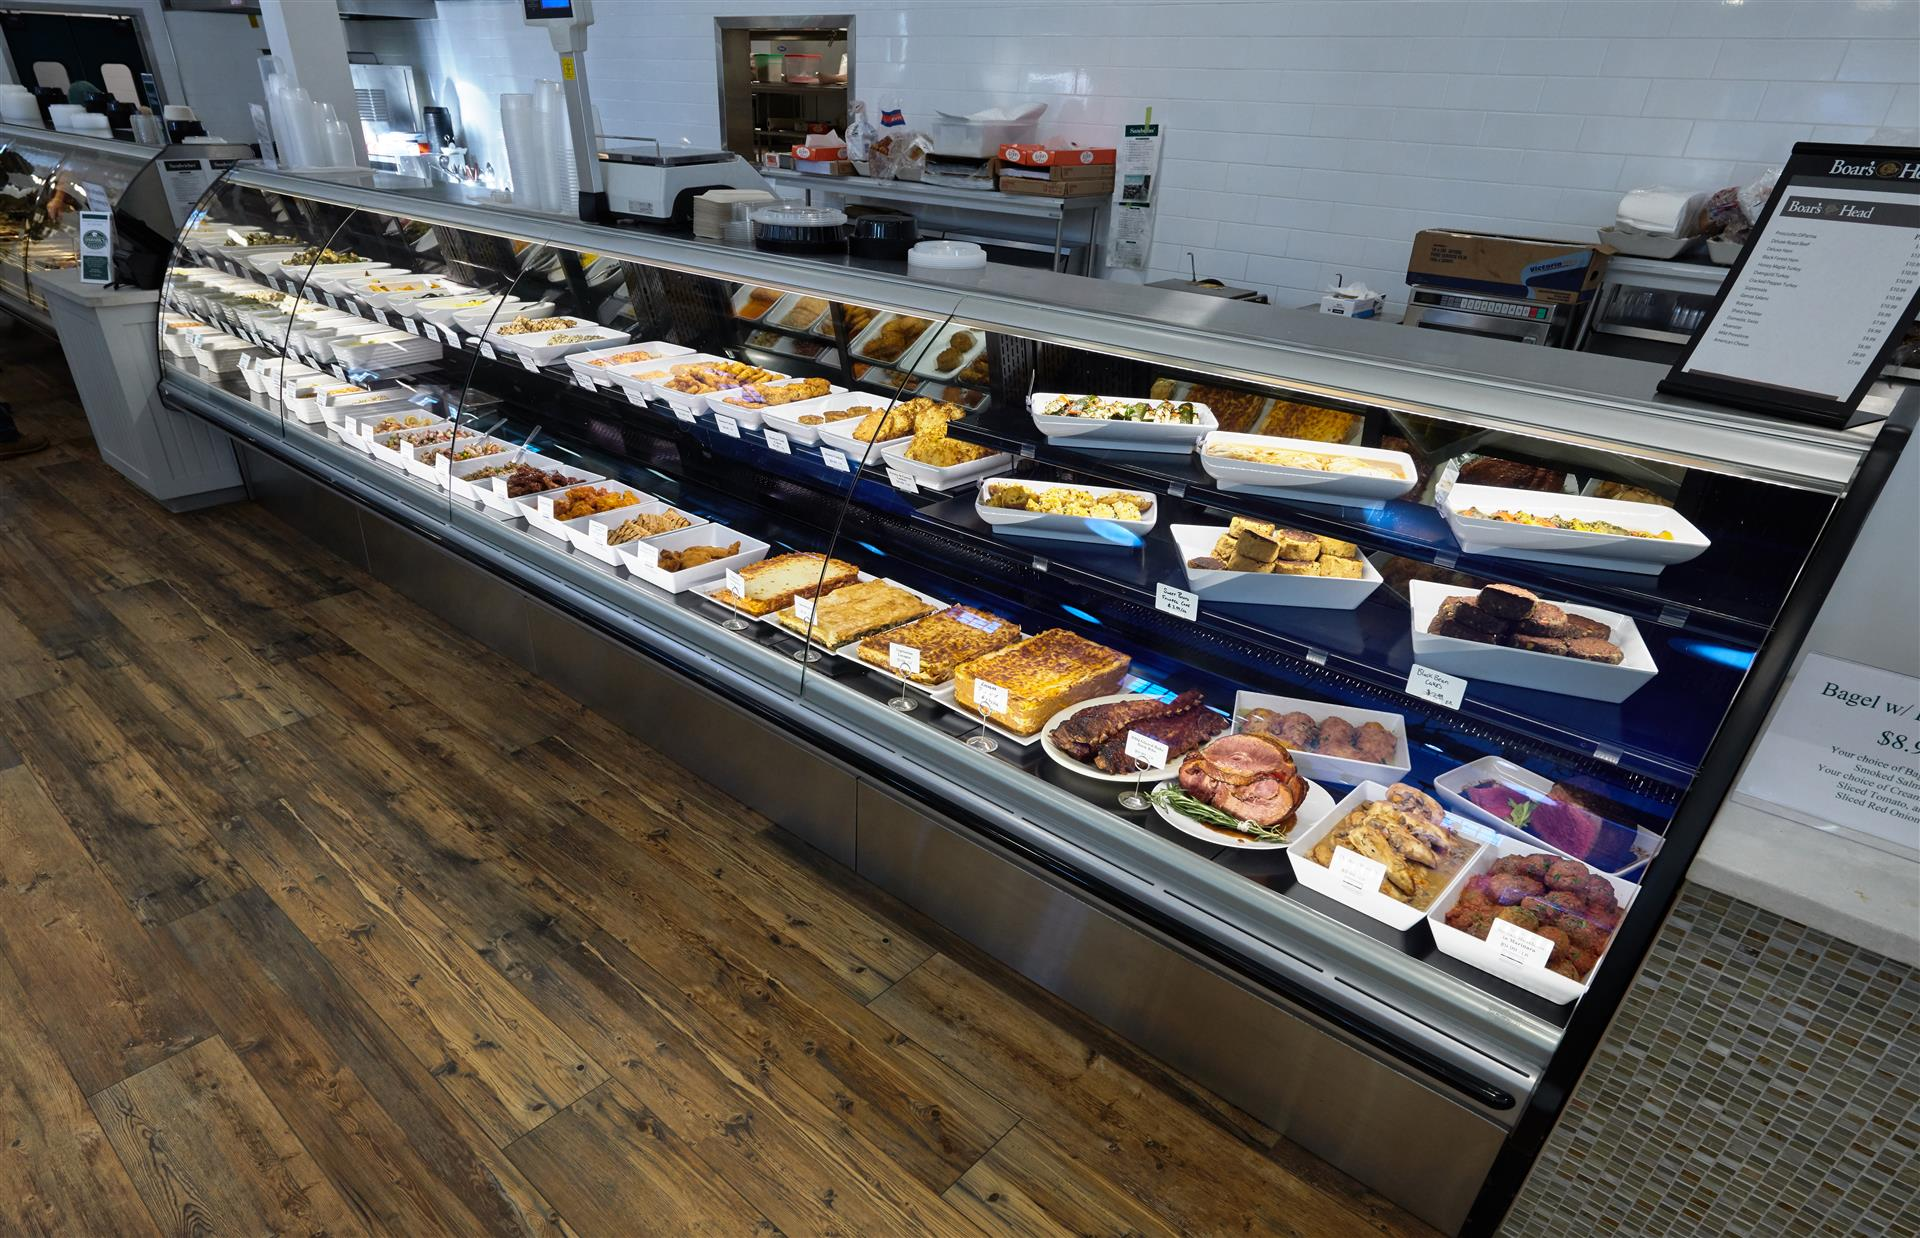 display case of meats and precooked food